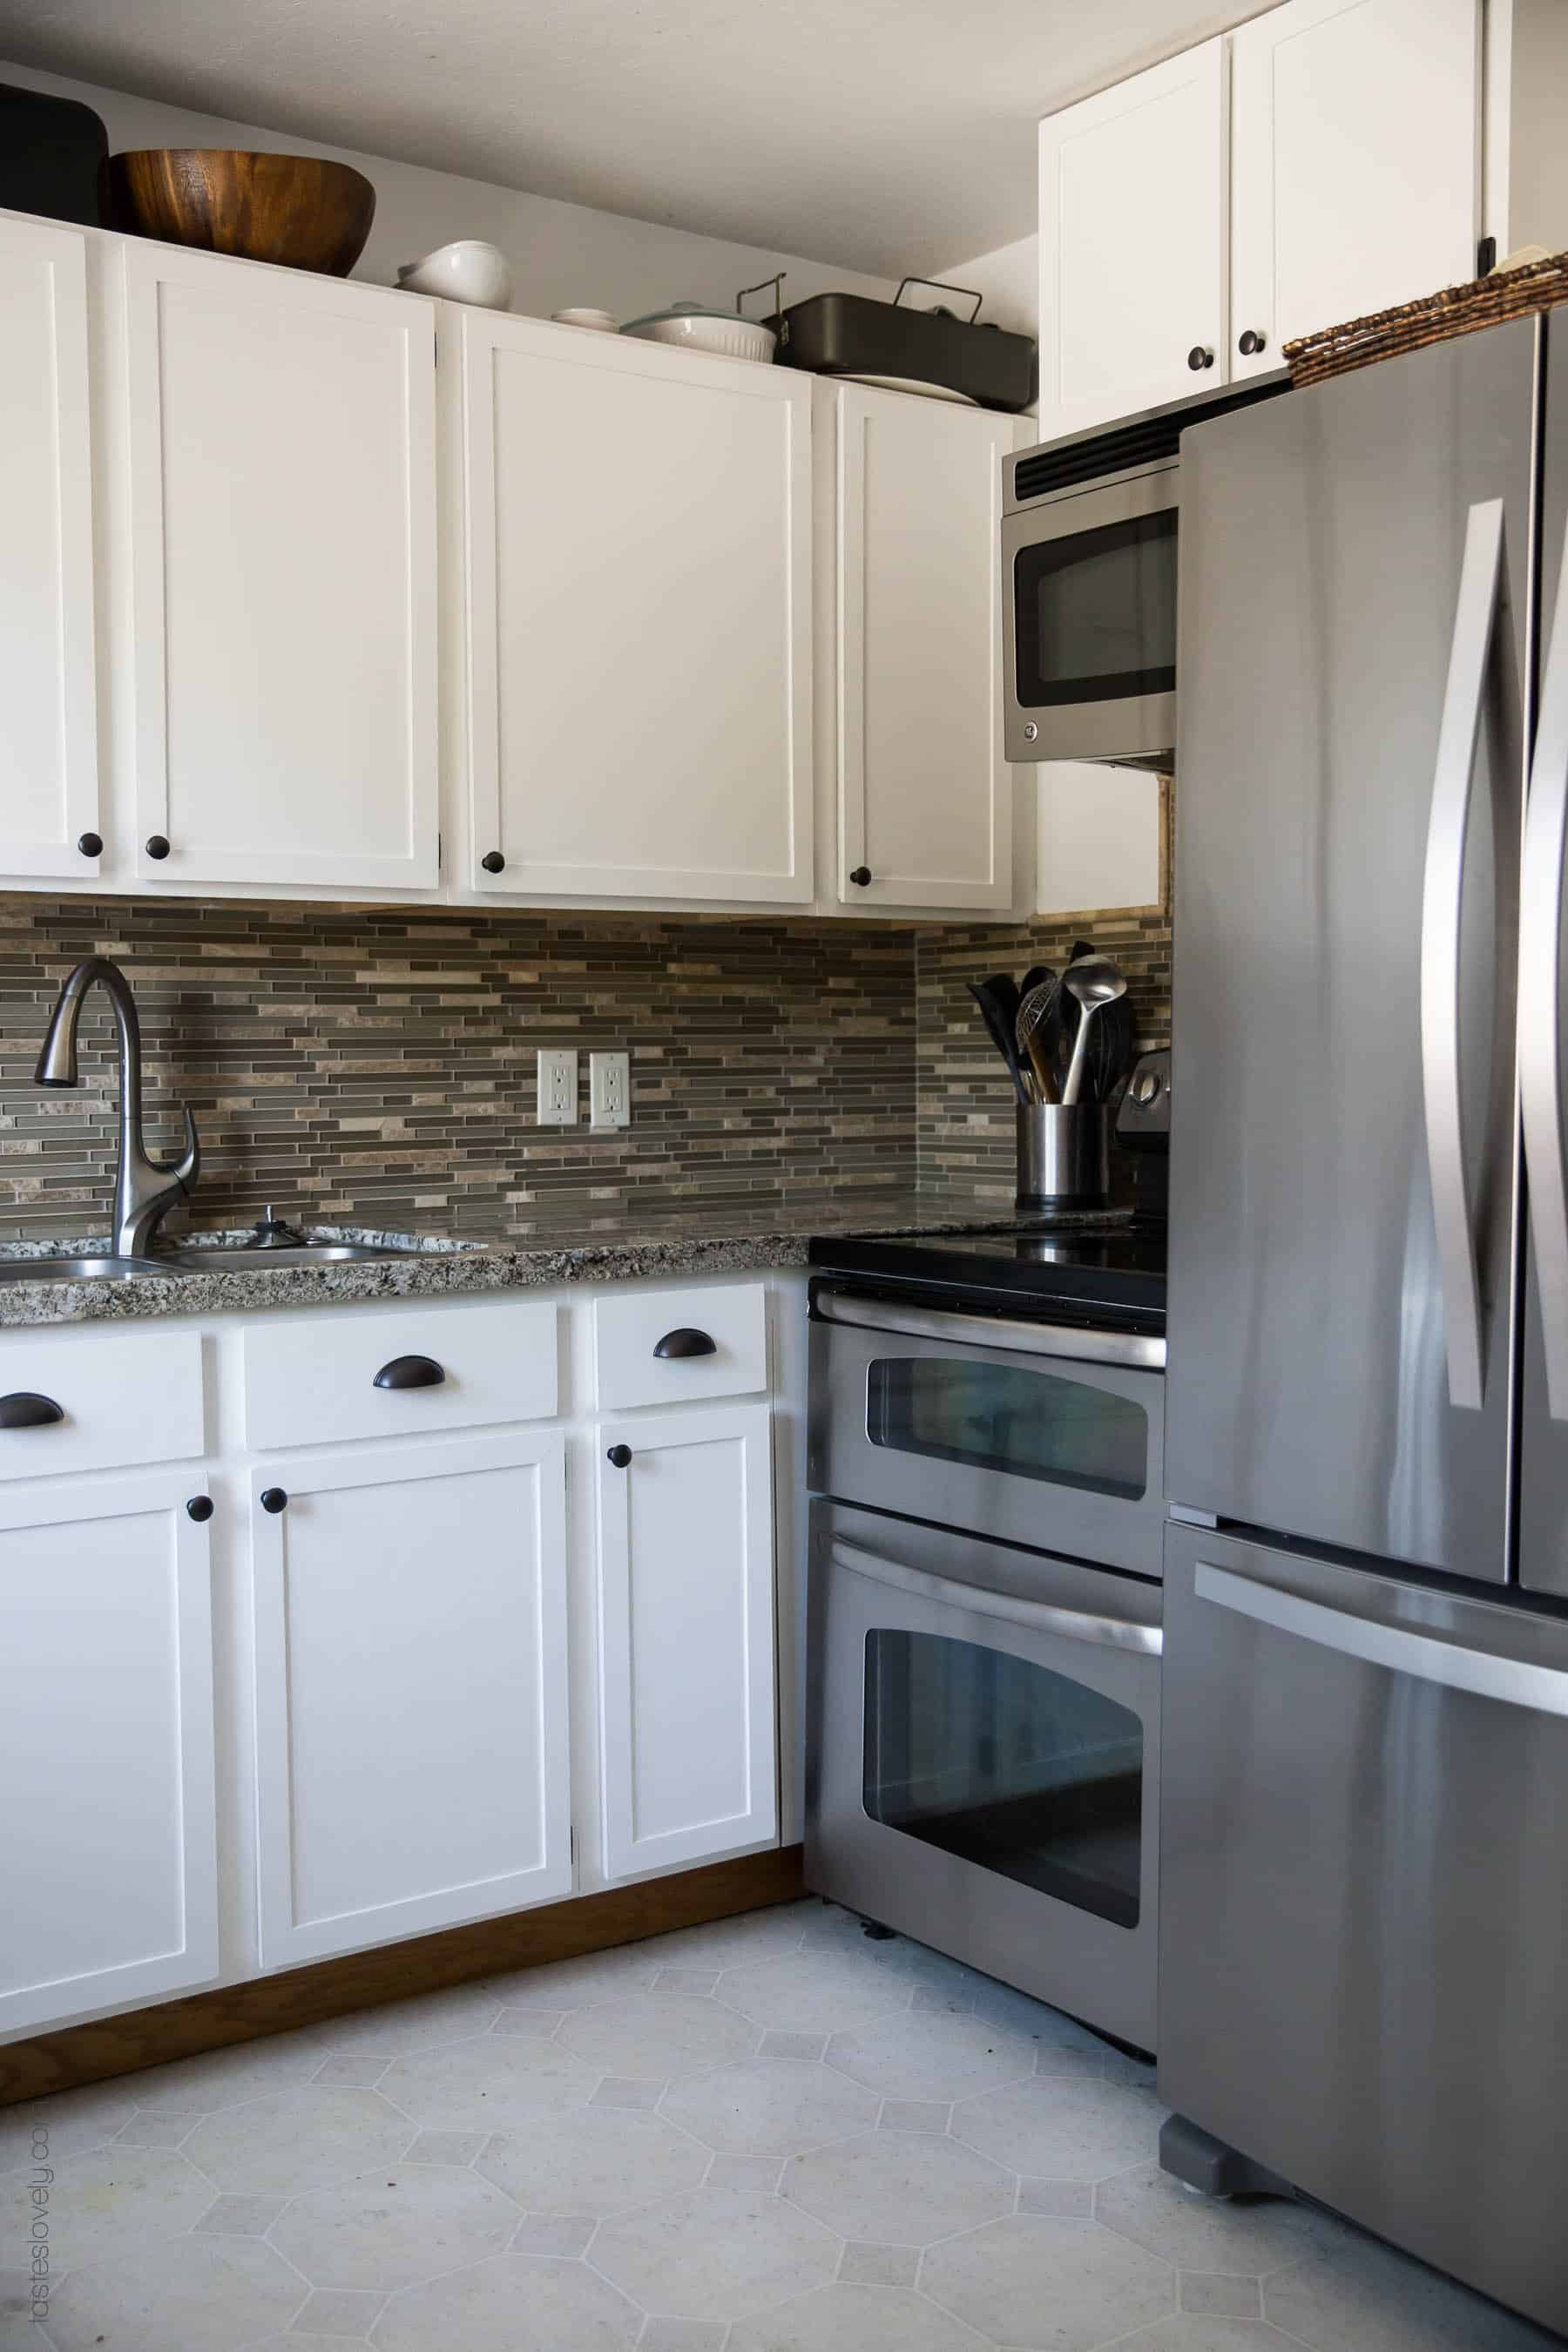 Our $281 DIY Kitchen Remodel - DIY painting oak cabinets white, adding wood trim to make shaker style cabinets, and adding hardware